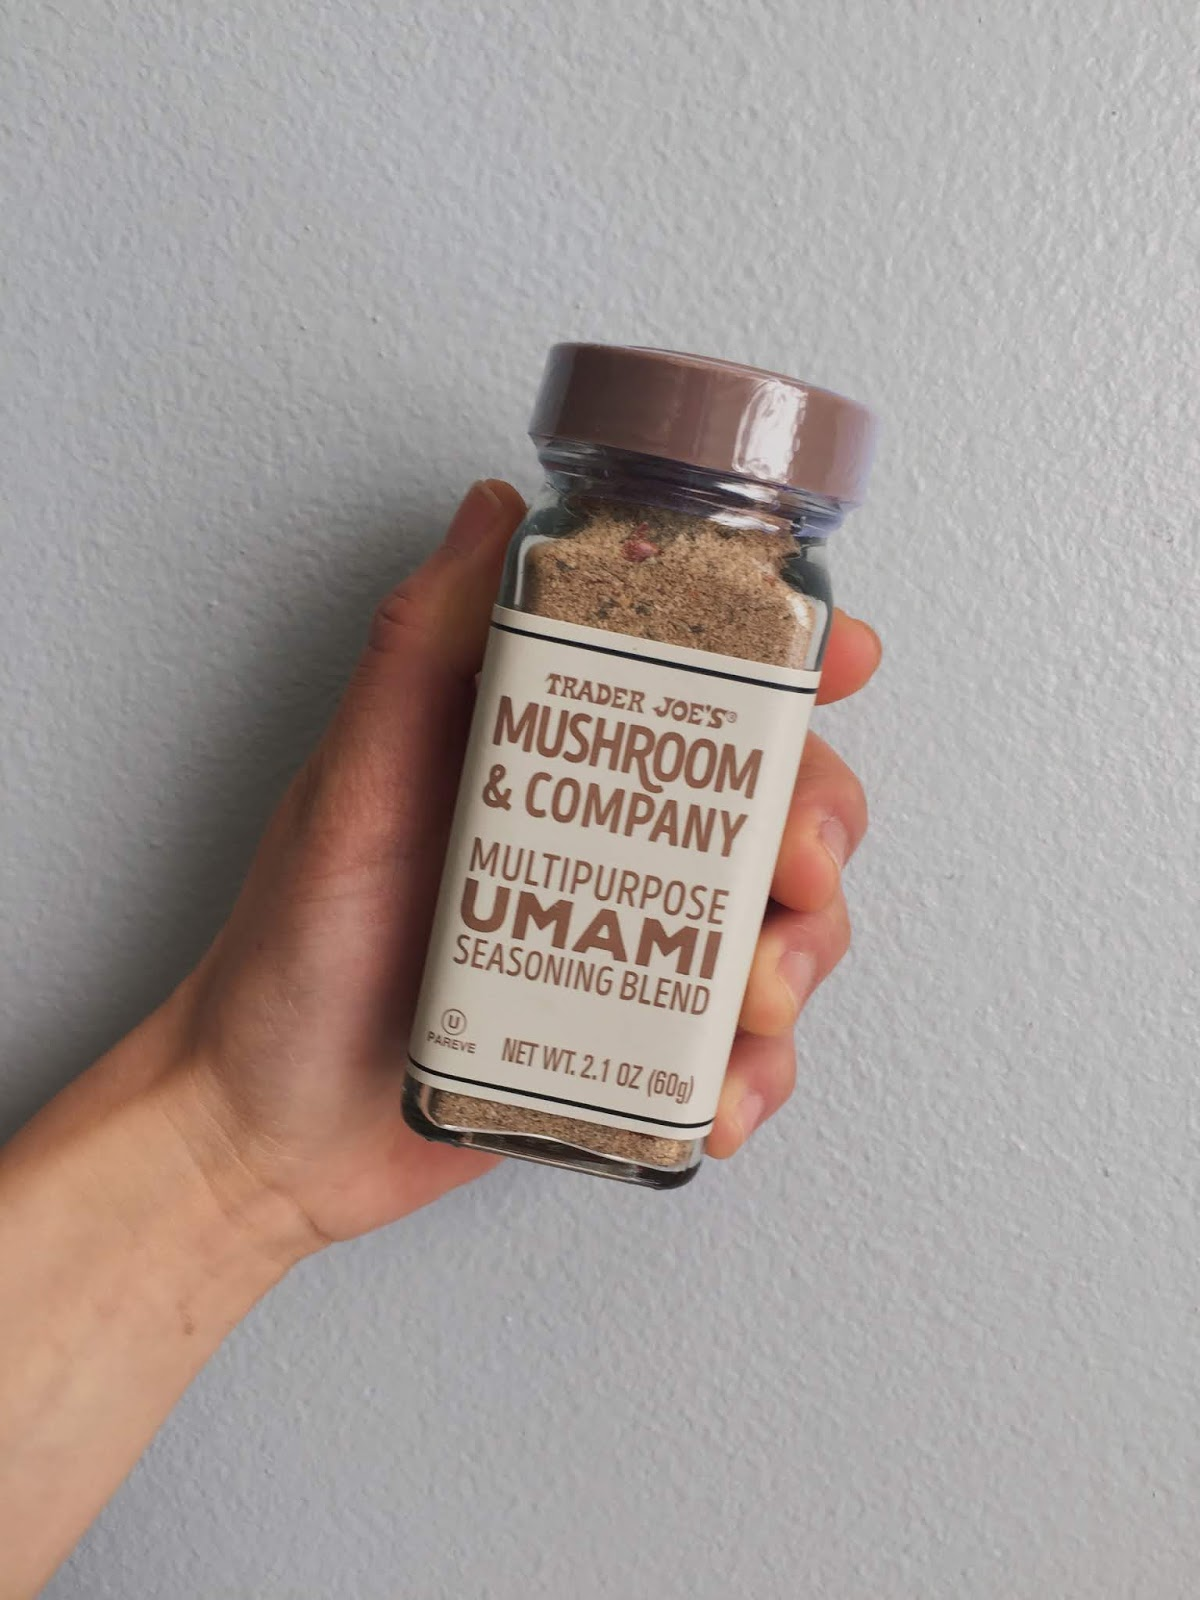 Trader Joe S Mushroom Company Multipurpose Umami Seasoning Blend